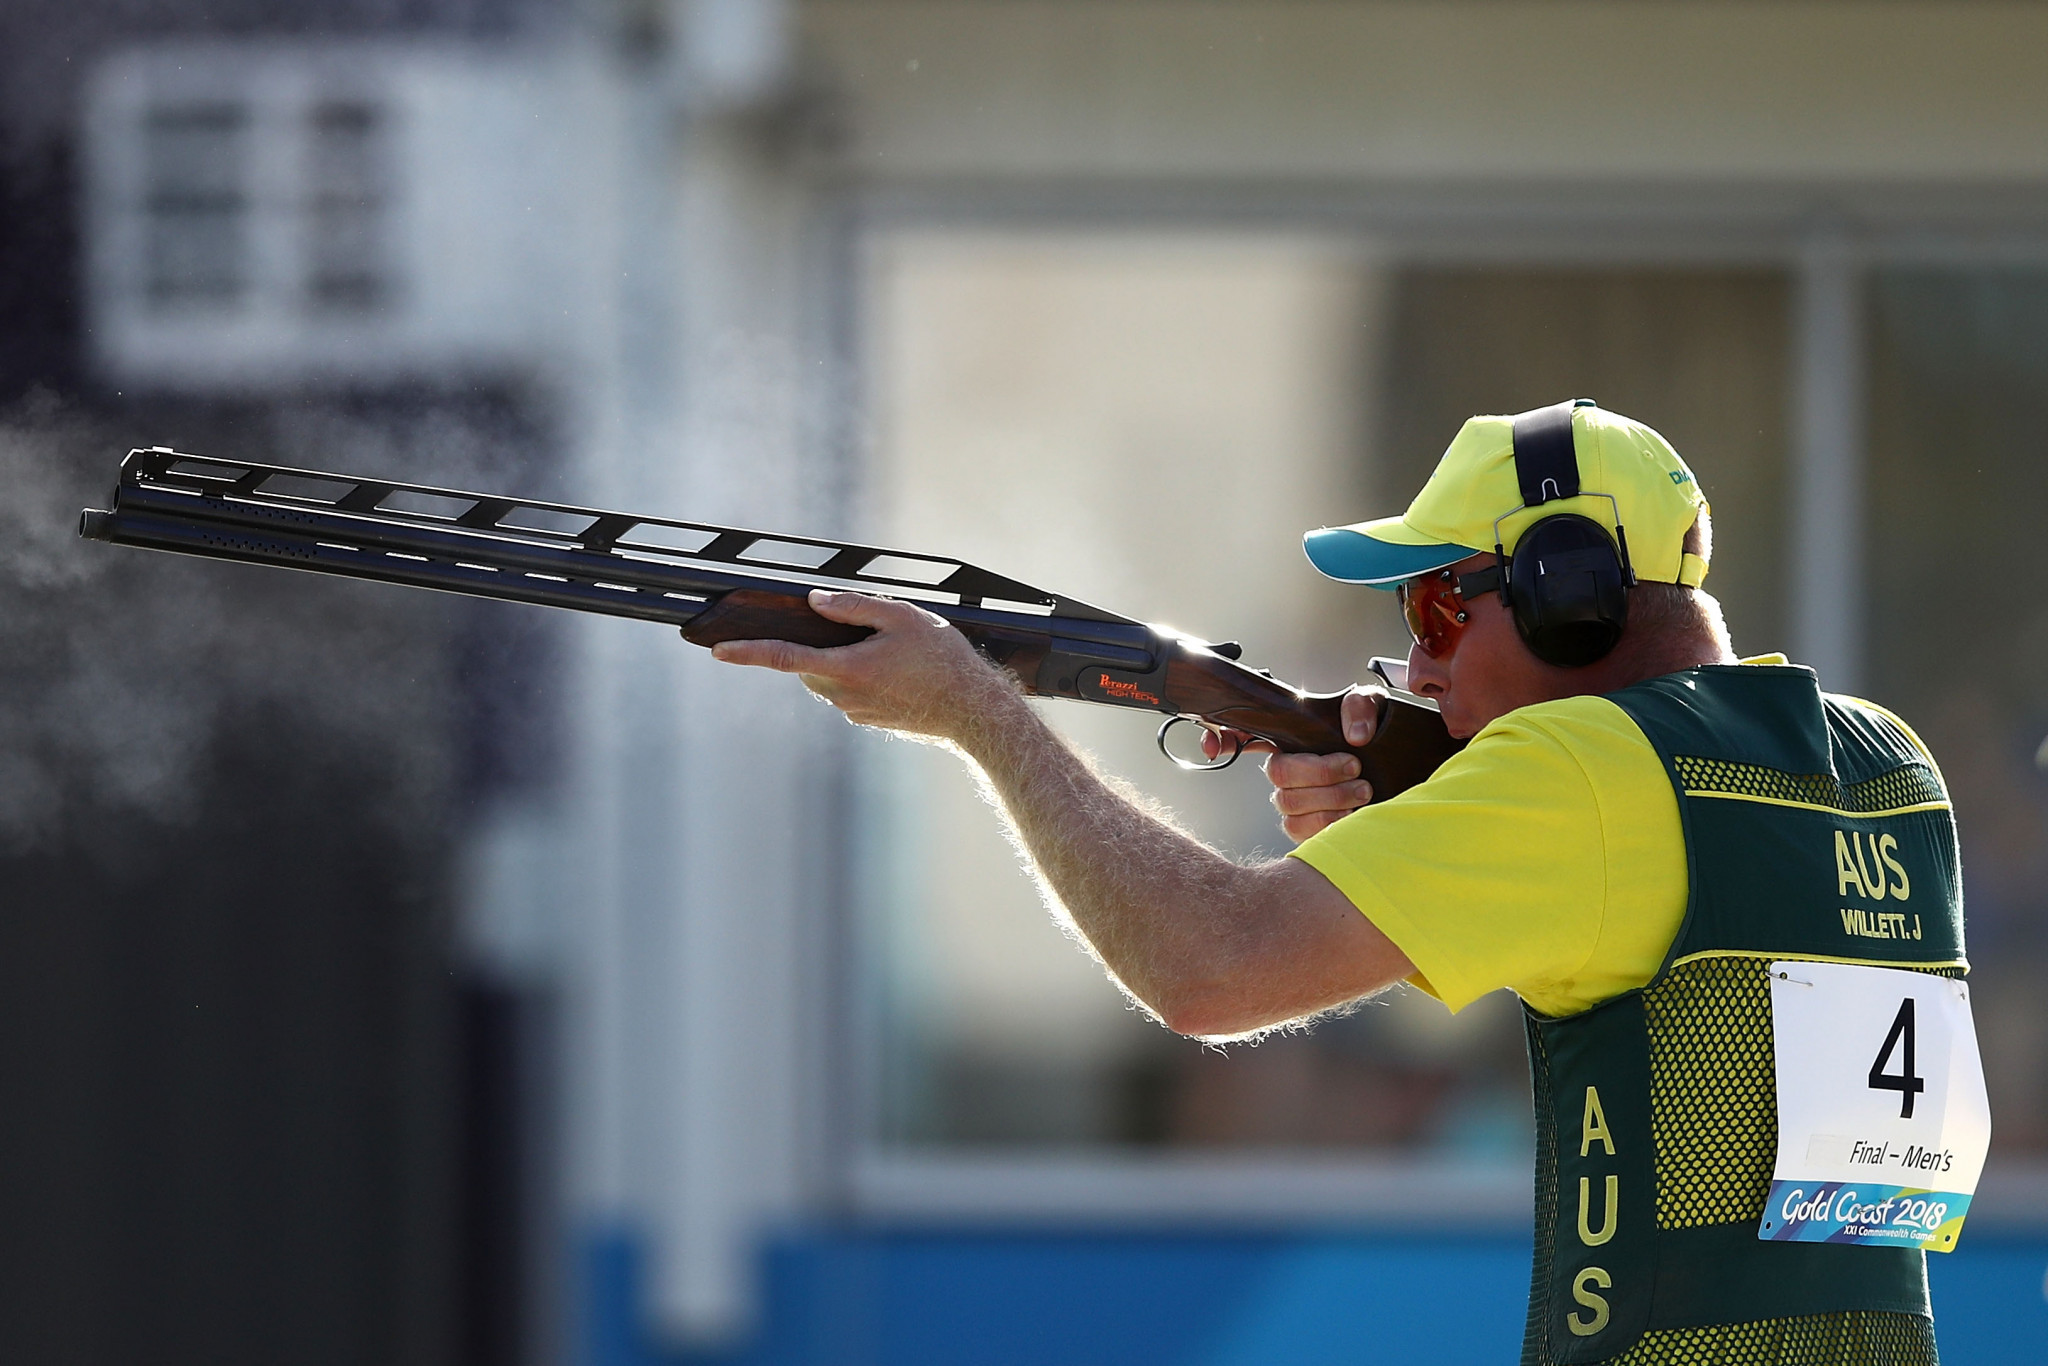 James Willett made it two gold medals in two days at the International Shooting Sport Federation World Cup in Acapulco ©Getty Images